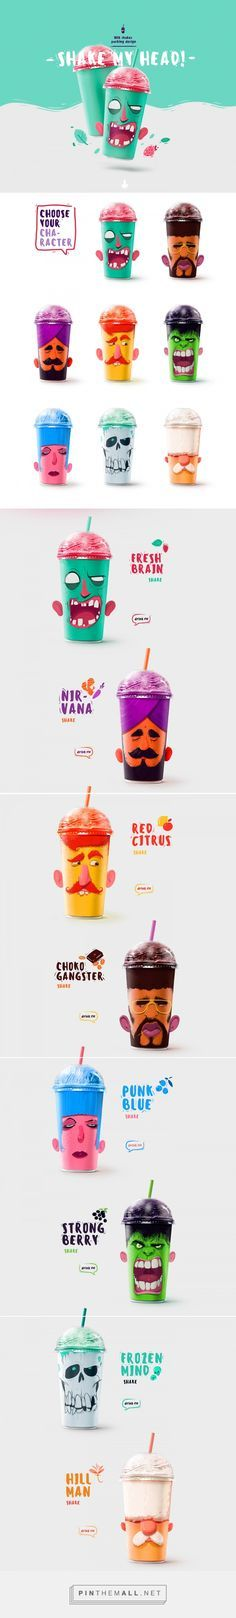 Illustration, graphic design and packaging for Shake my head on Behance by Rustam Usmanov Moscow, Russian Federation curated by Packaging Diva PD. Let's have a milkshake for the packaging smile file : )